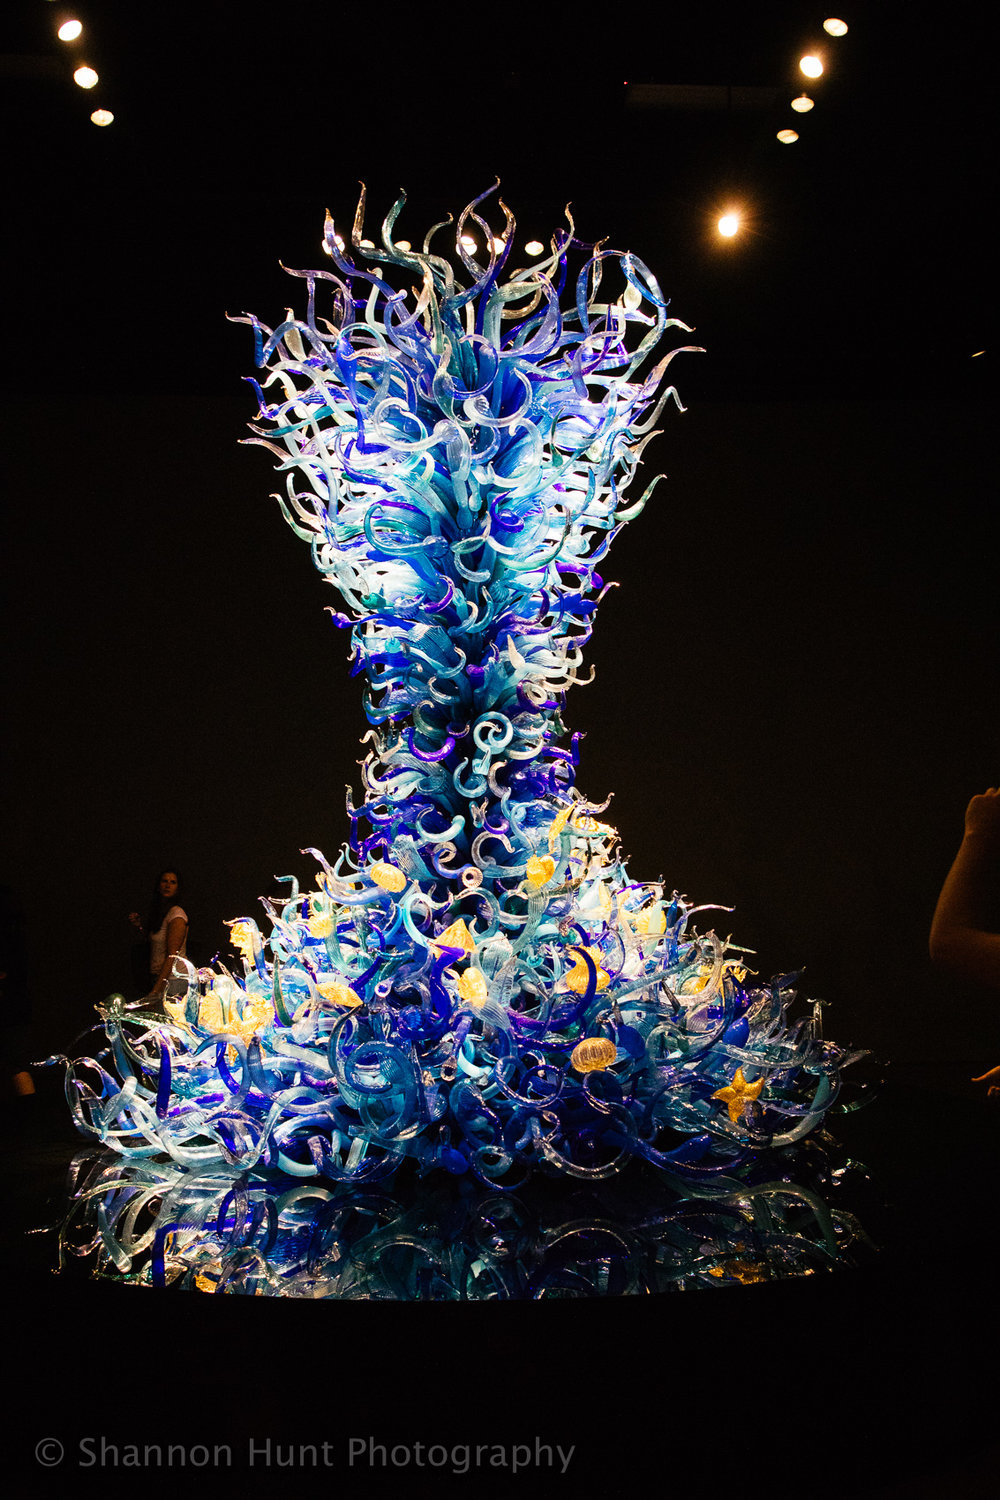 The Glass Museum and Dale Chihuly's work was so mesmerizing. My friend and I gasped each time we turned a corner and peeked into the next room.